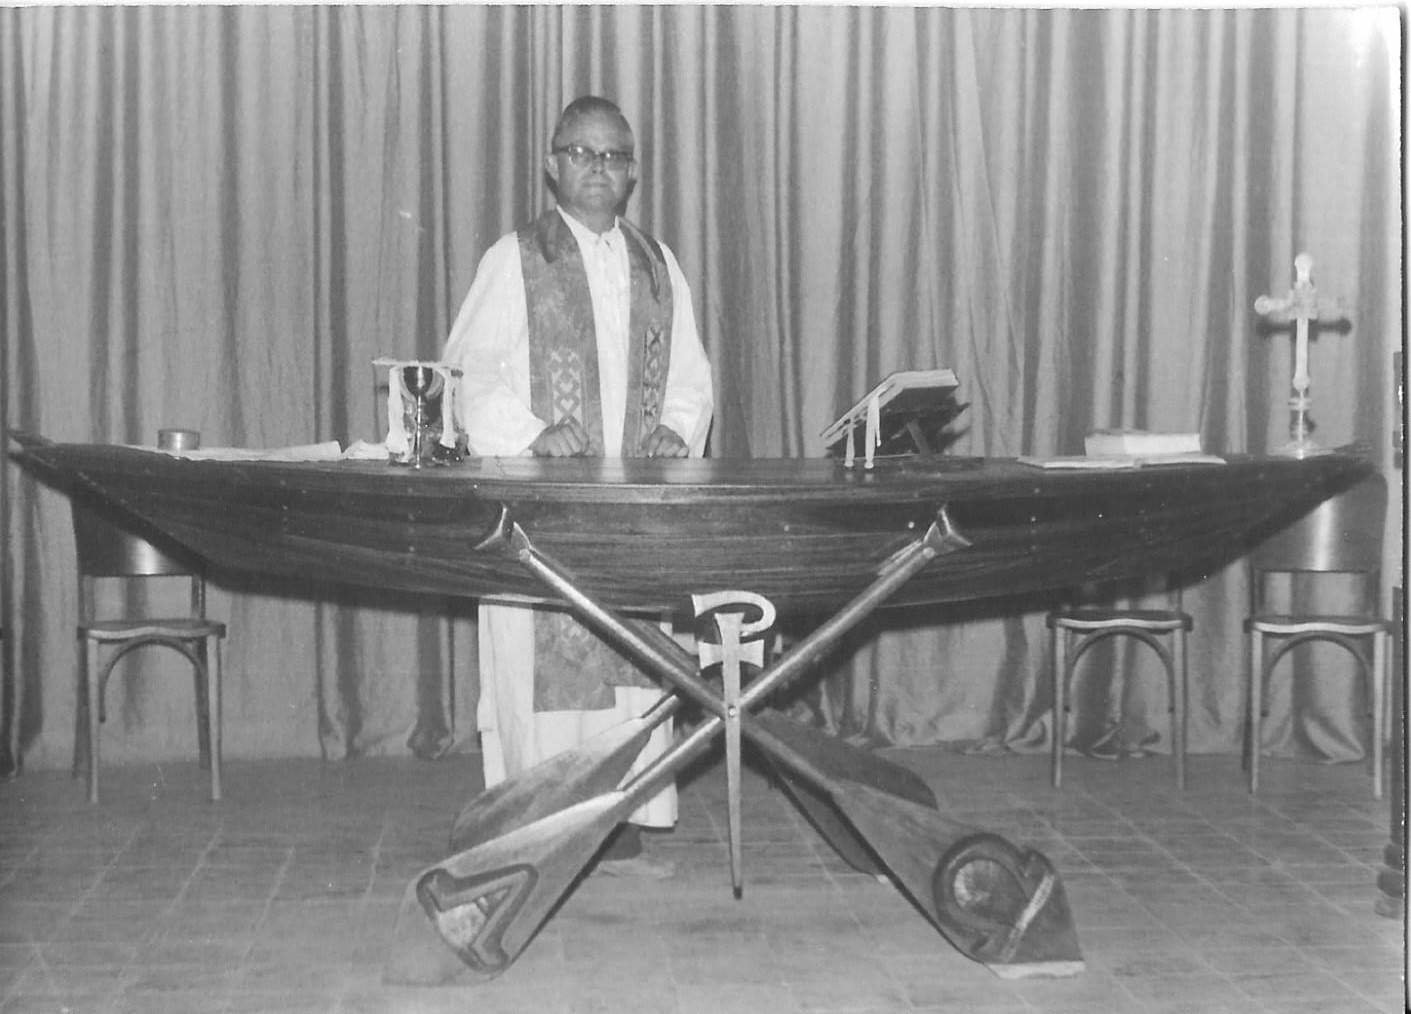 Redemptorist Father Vincent H. Aggeler stands at an altar made in the form of a canoe, in the parish church in Manacapuri, Brazil, in this undated photo. Pope St. John Paul II would offer Mass at this altar during one of his pastoral visits to Brazil.